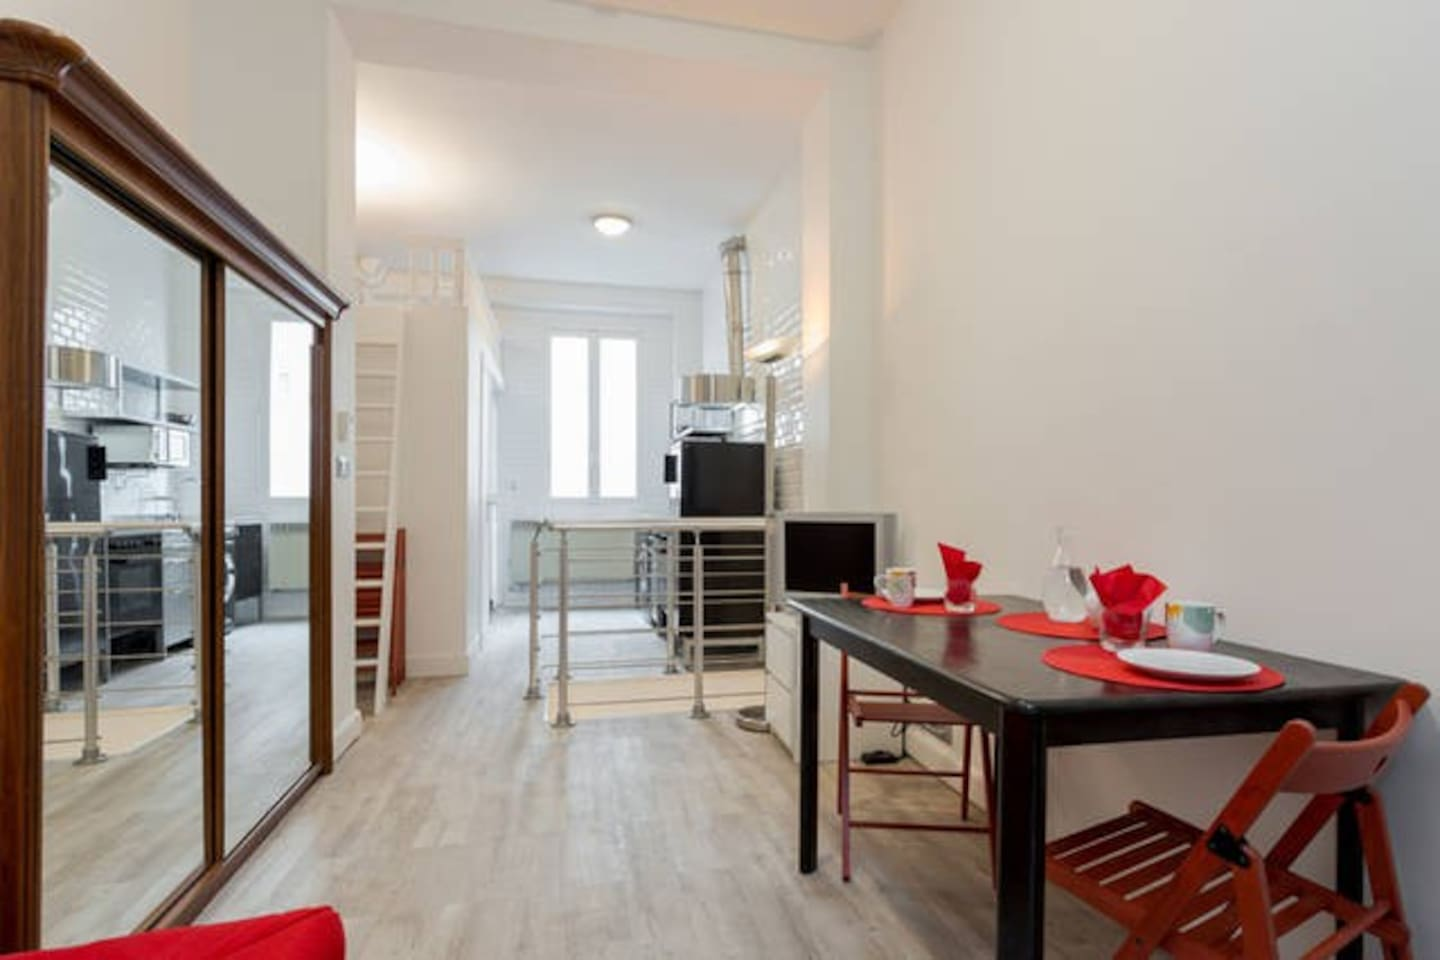 A quiet flat at 16 rue Bosquet, 30m away from the shops and restaurants of rue Cler with its famous street market